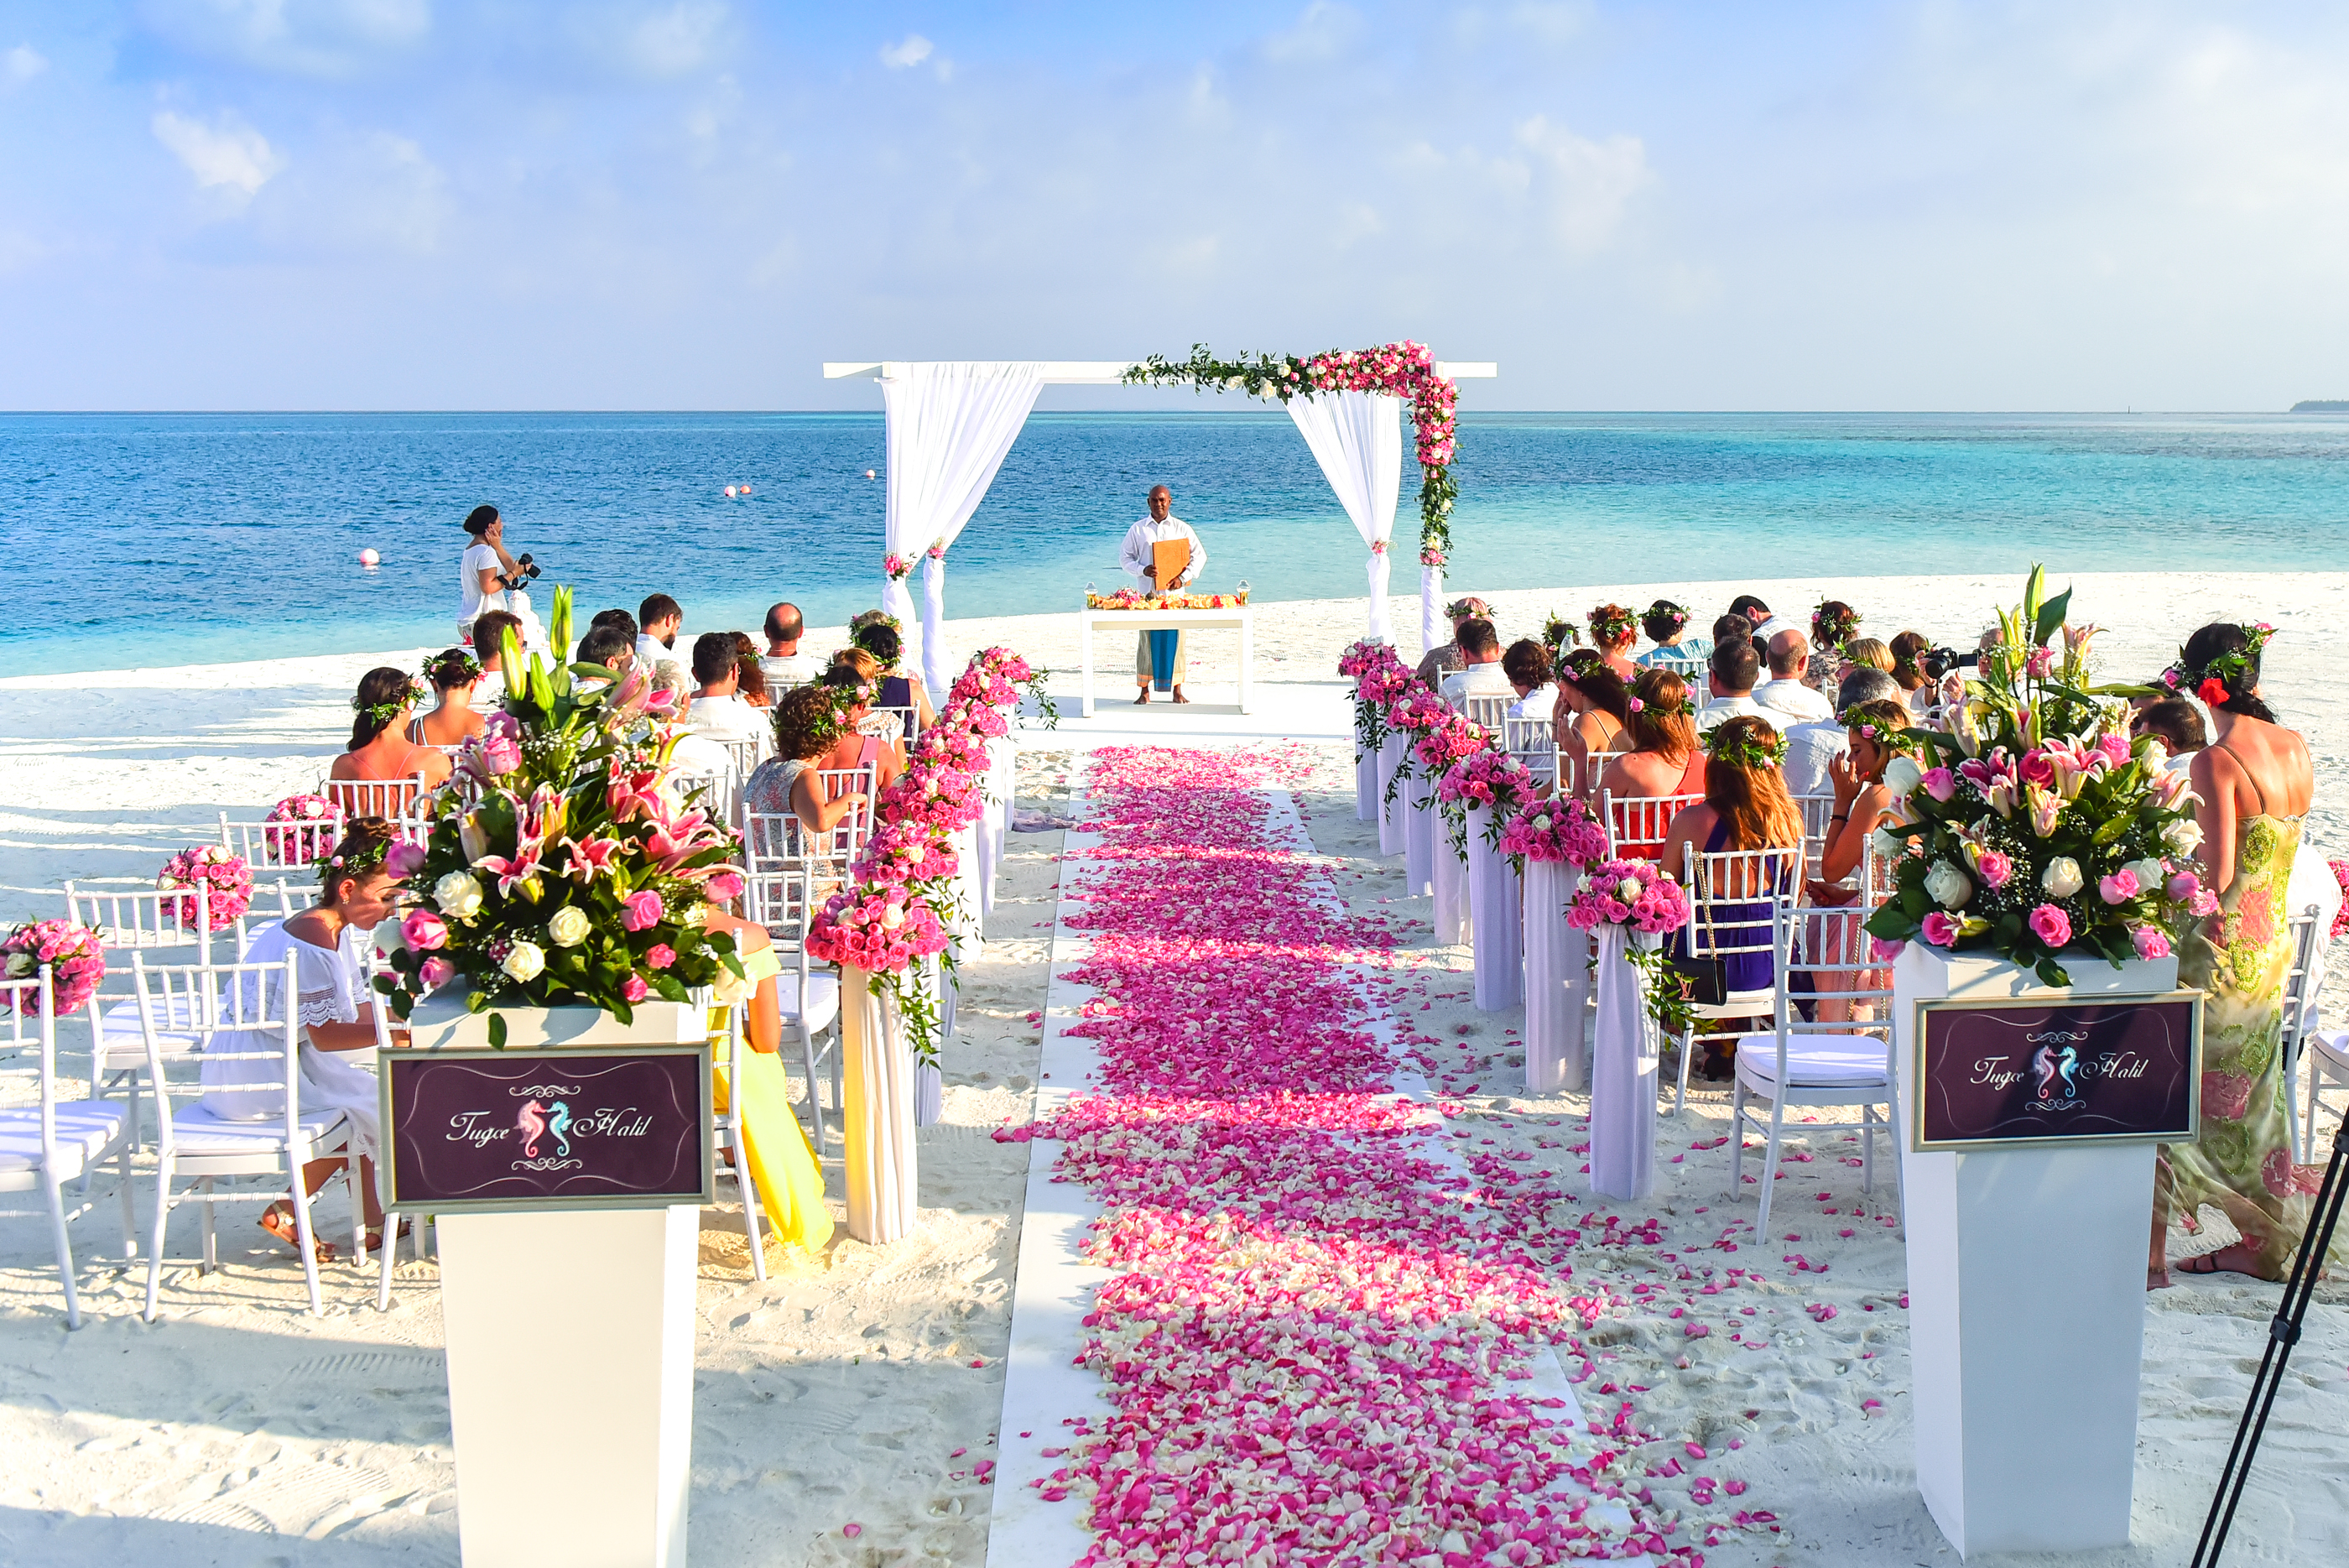 Beach Wedding Ceremony During Daytime Free Stock Photo